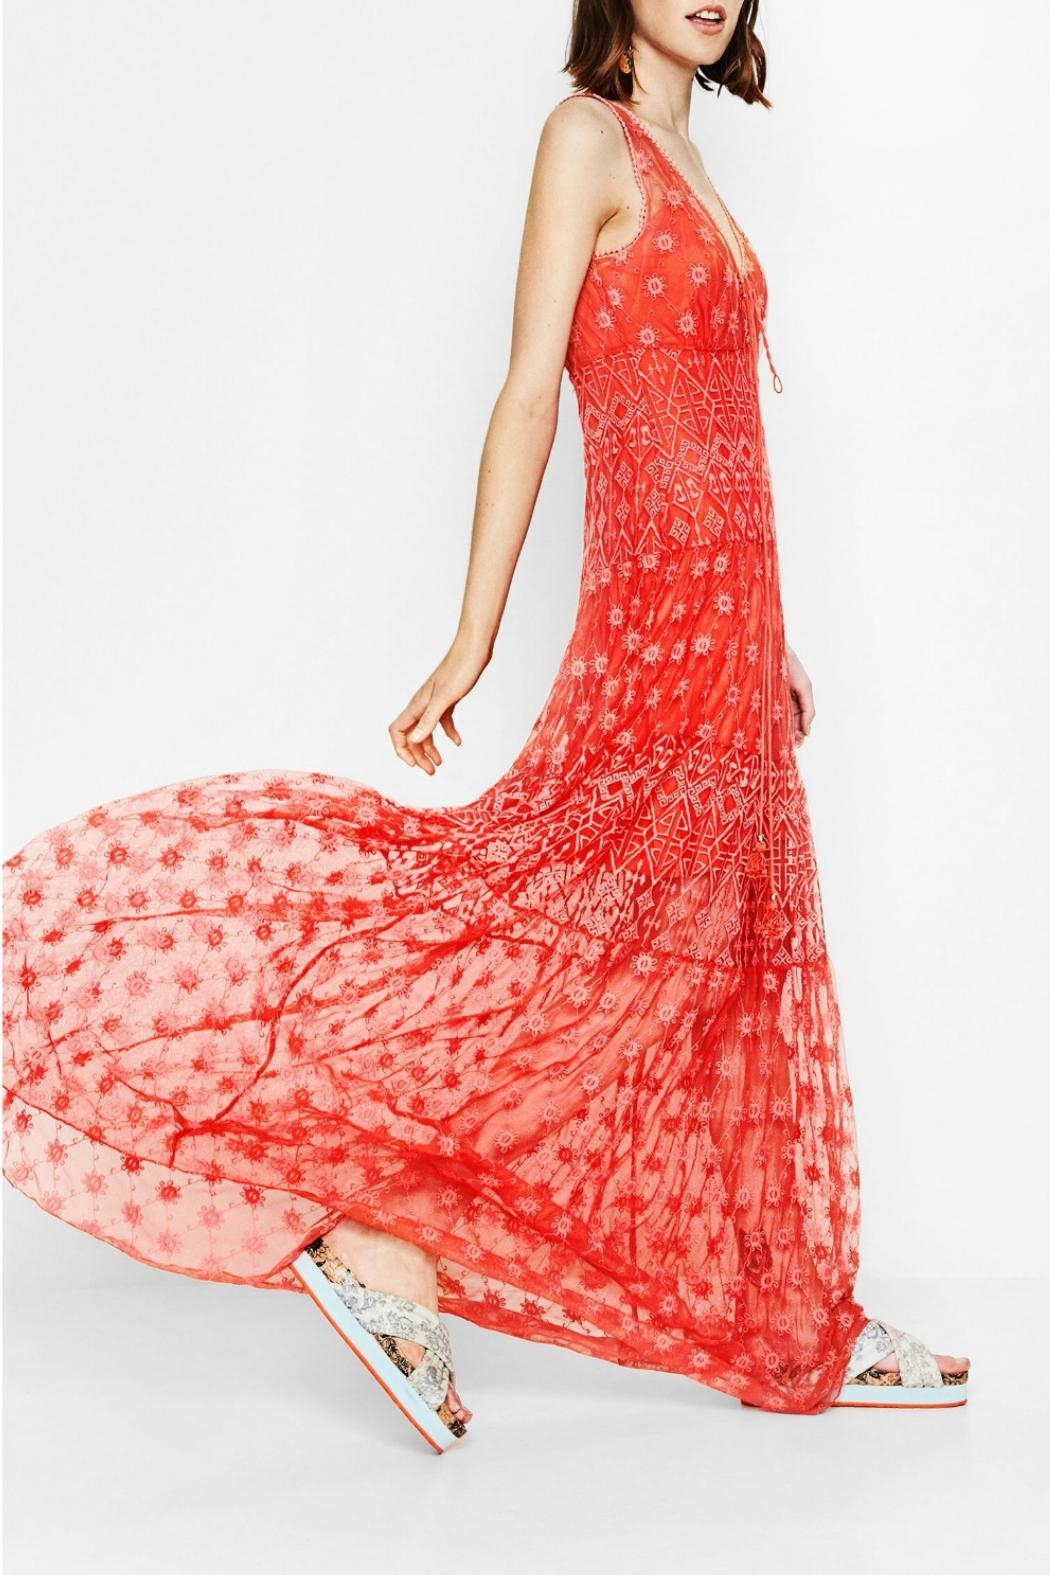 DESIGUAL Miravet Long Summer Dress from Canada by Blue Sky Fashions ...